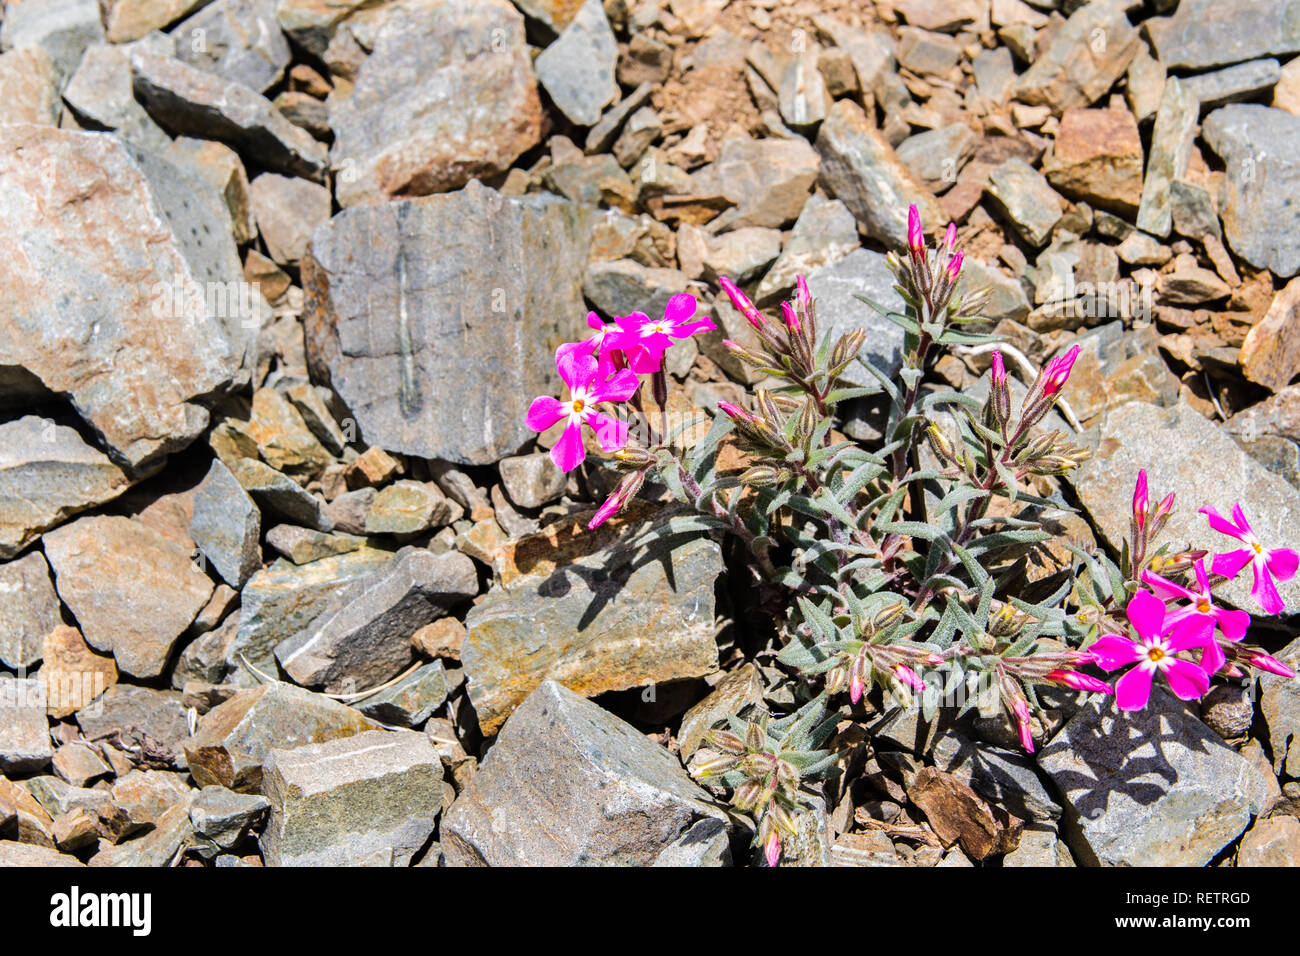 Cold desert phlox (Phlox stansburyi) growing at high altitude, in the mountains of Death Valley National Park, California - Stock Image